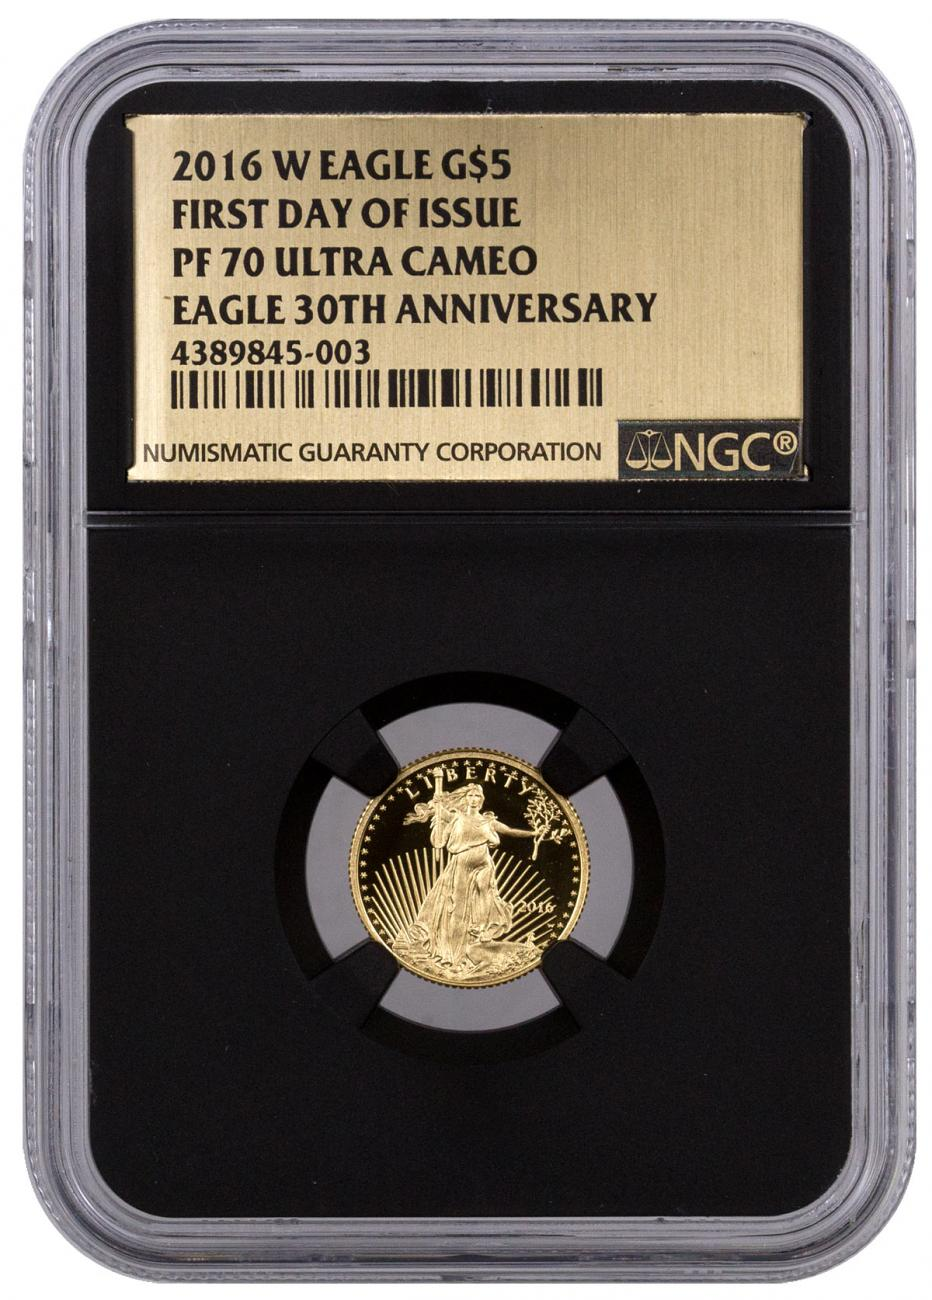 2016-W $5 1/10 oz. Proof American Gold Eagle - NGC PF70 UC First Day of Issue (Gold Foil Label with Black Core)